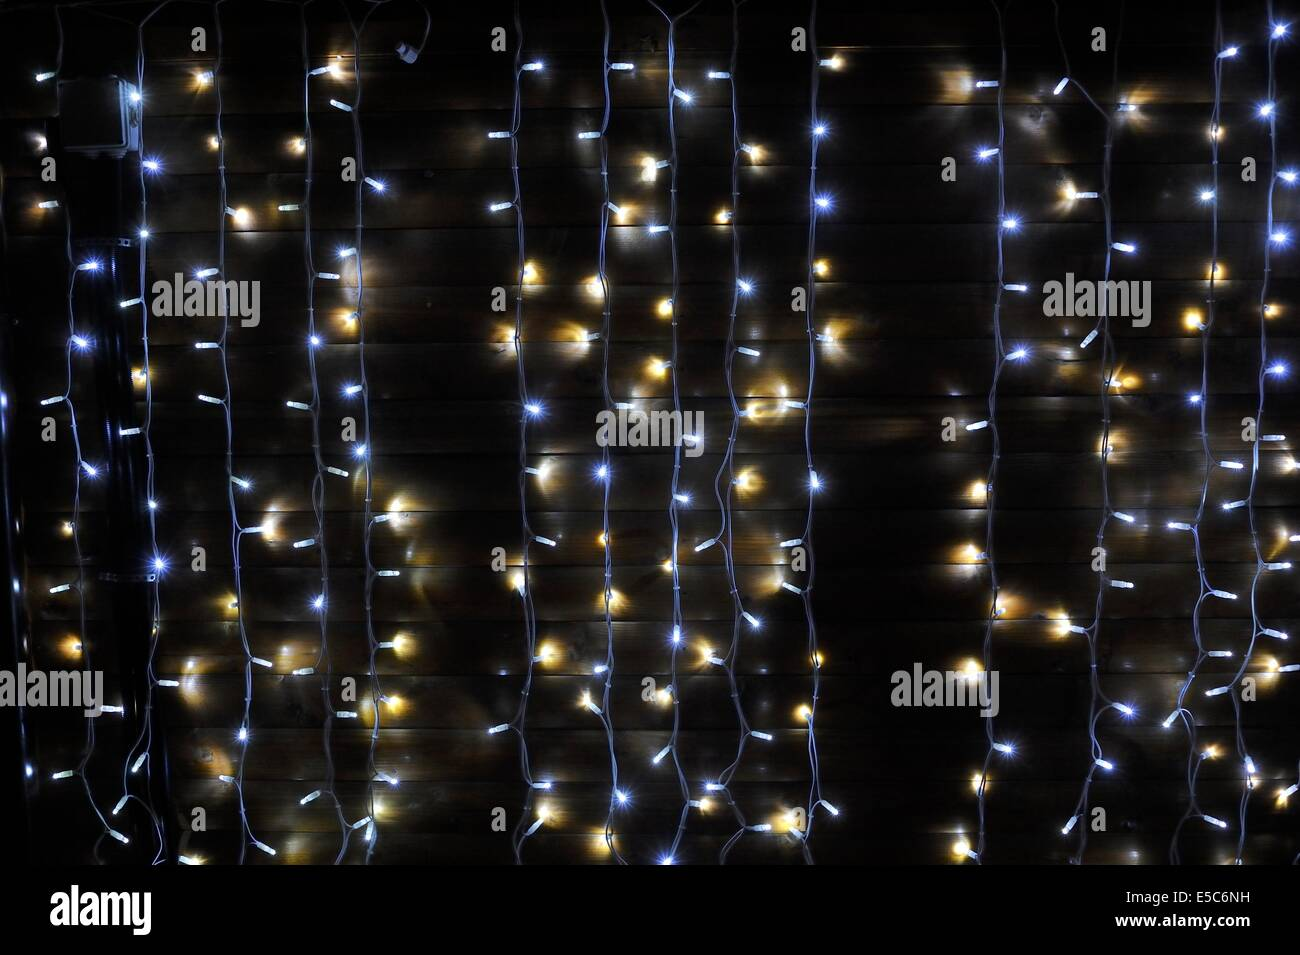 Images of Wall Christmas Lights - Best Christmas Tree Decoration Ideas